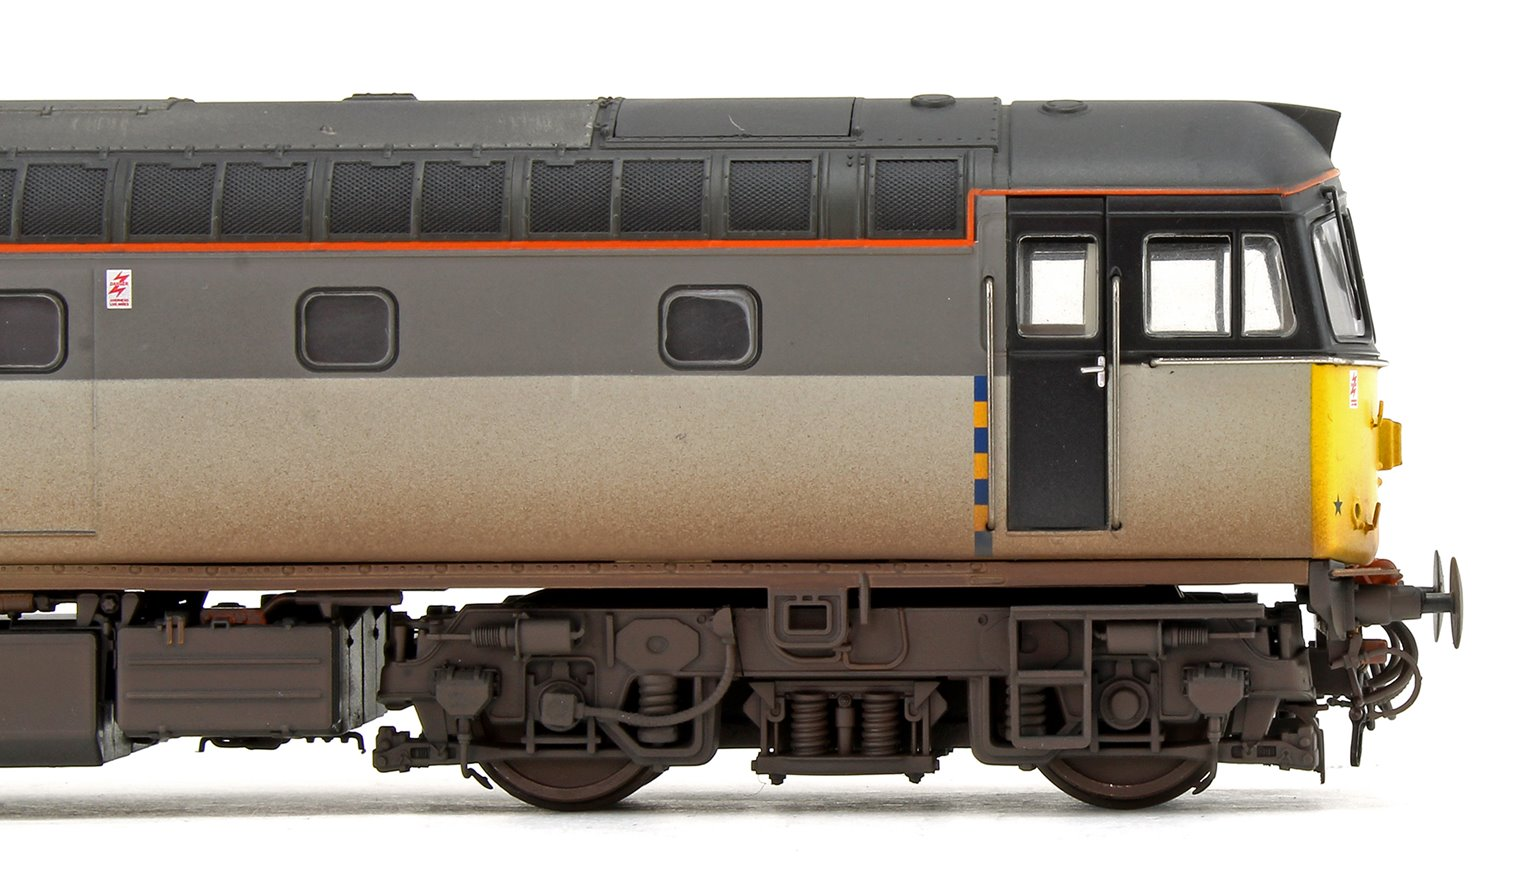 Class 33 042 Railfreight Construction Diesel Locomotive (Weathered & Faded)